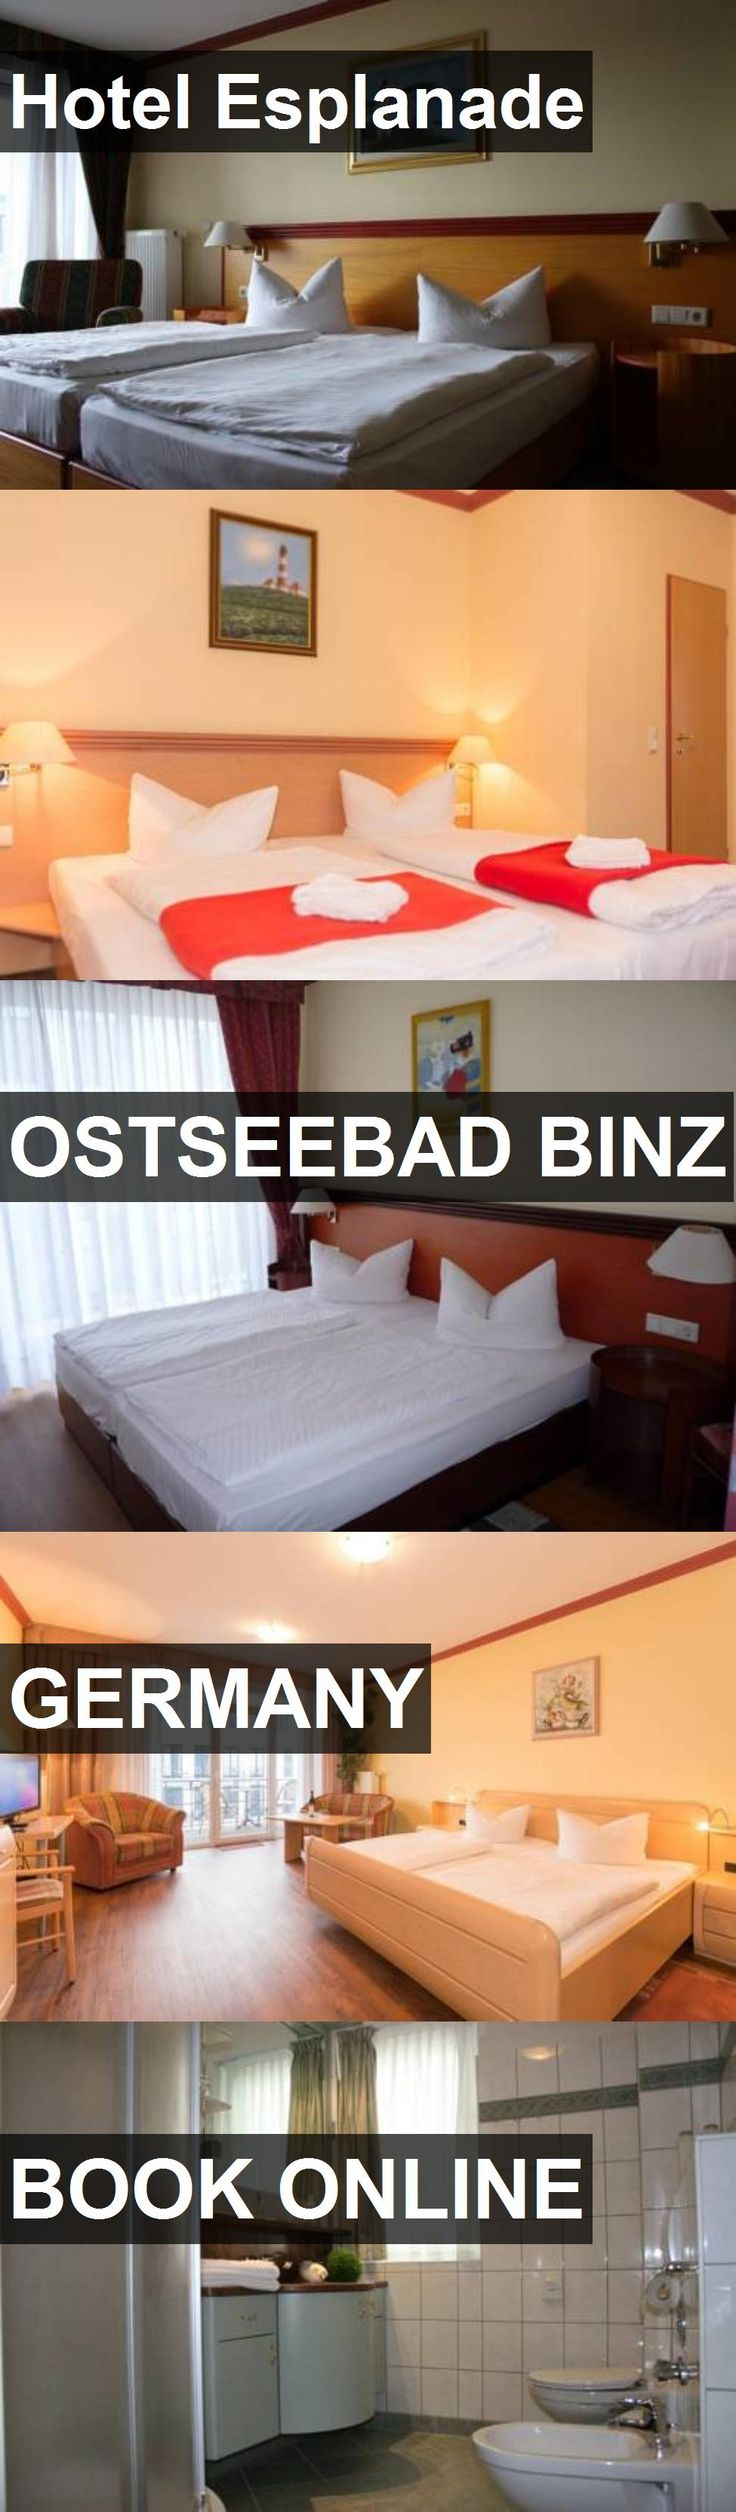 Hotel Esplanade in Ostseebad Binz, Germany. For more information, photos, reviews and best prices please follow the link. #Germany #OstseebadBinz #travel #vacation #hotel